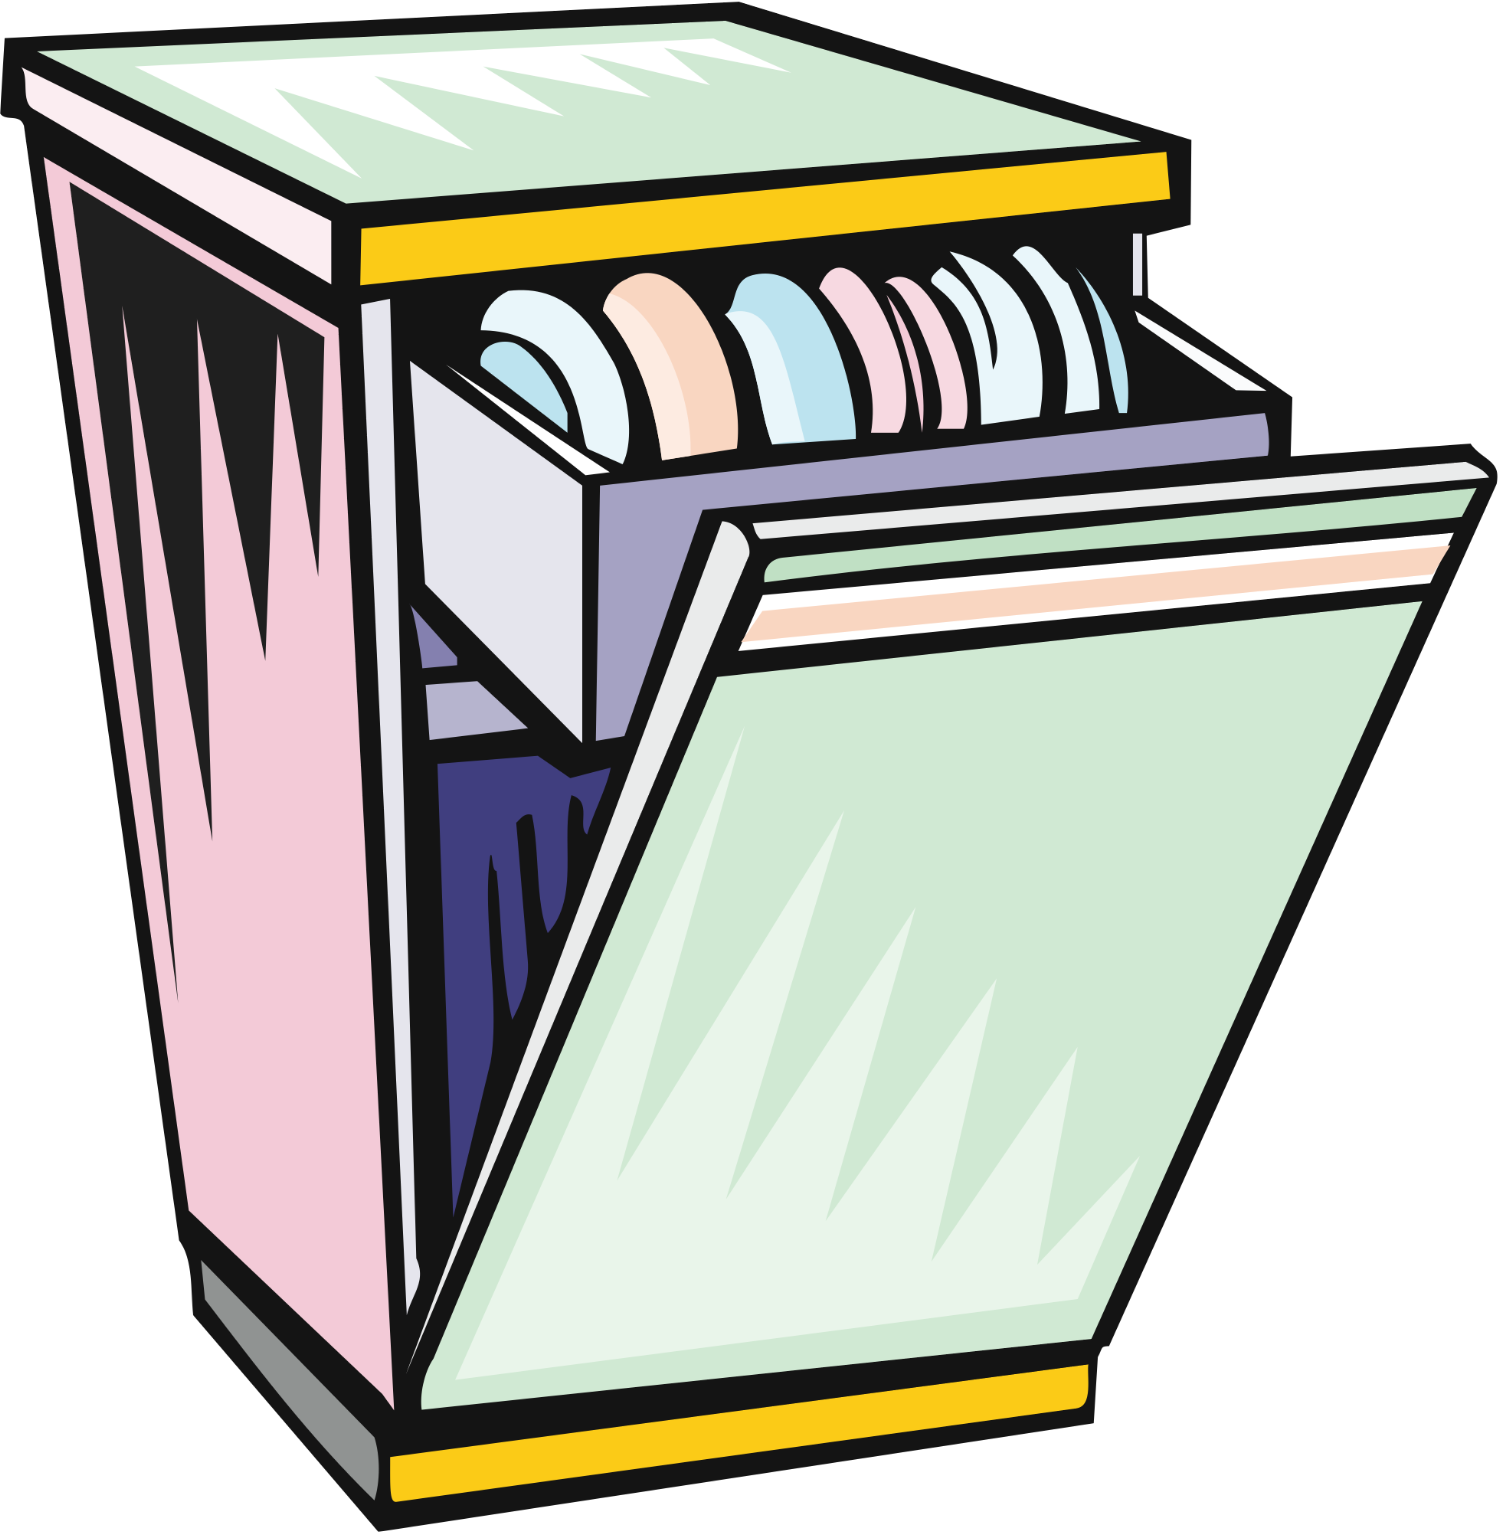 banner stock Free cliparts download clip. Dishwasher clipart.